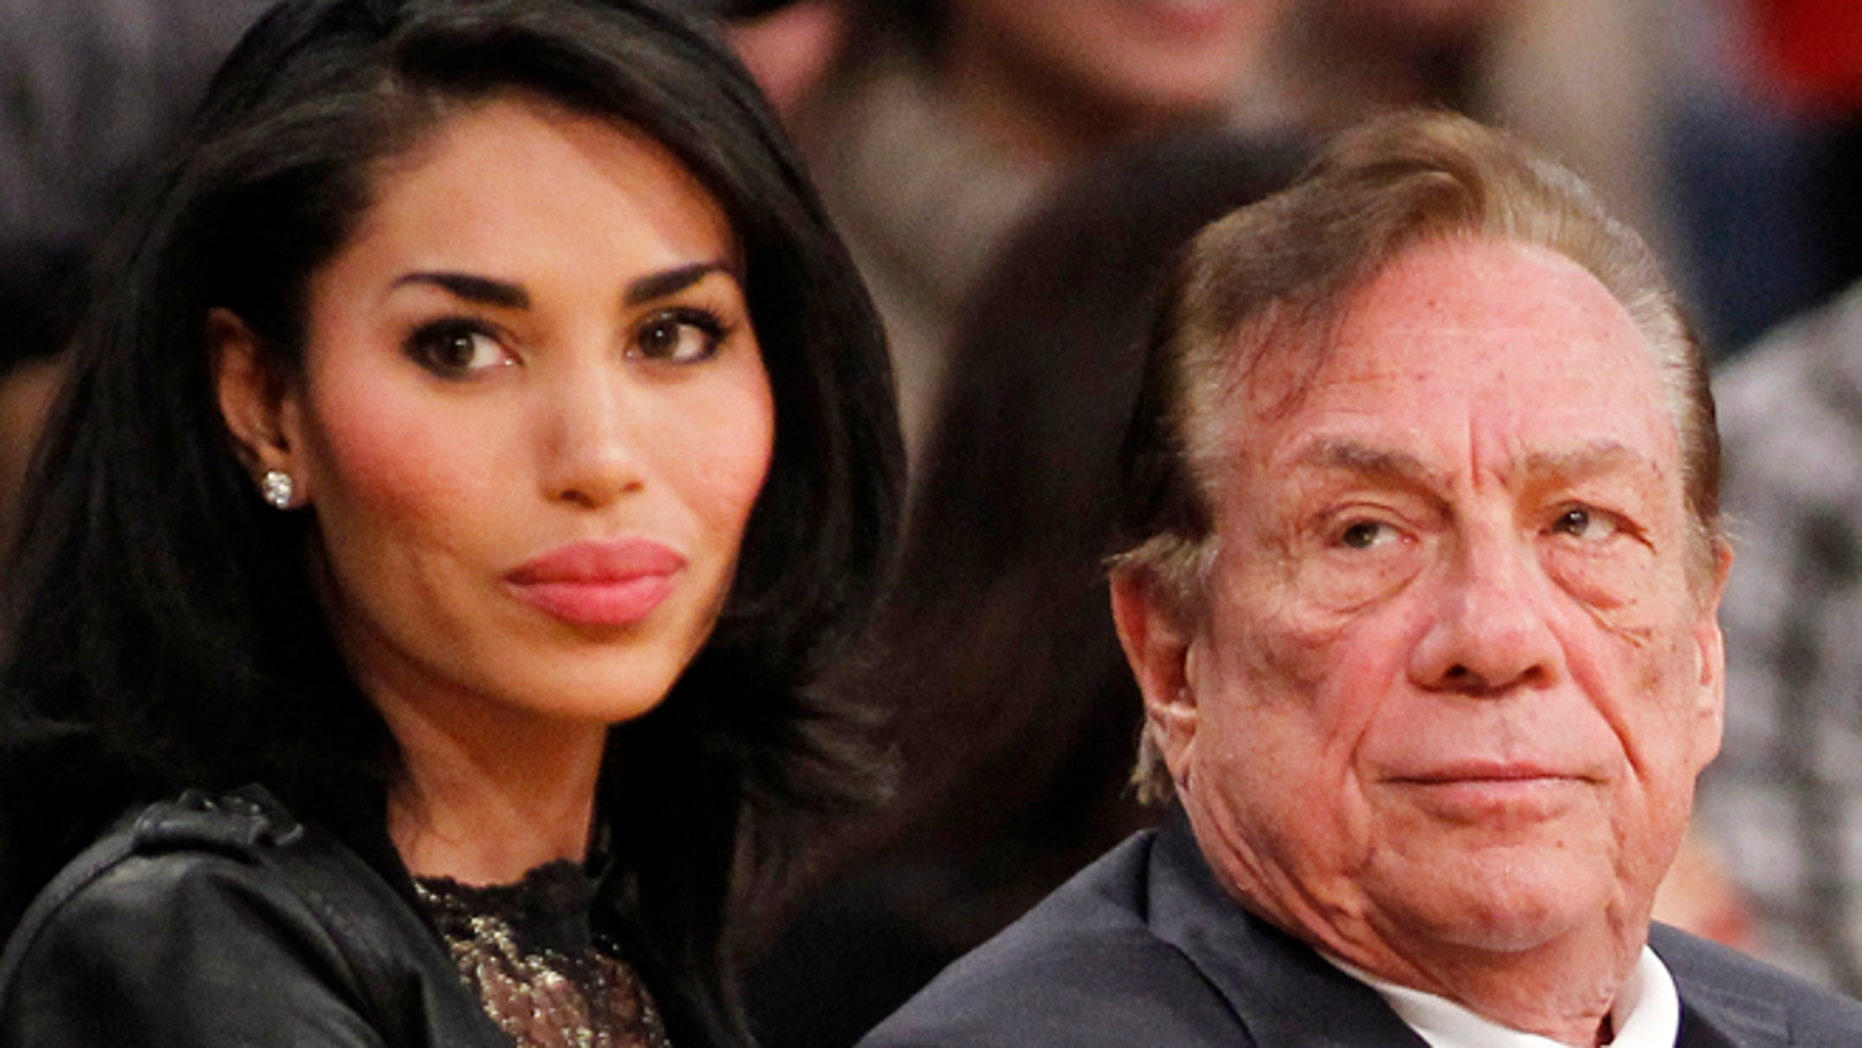 Donald Sterling and V. Stiviano in a  December 2010 file photo